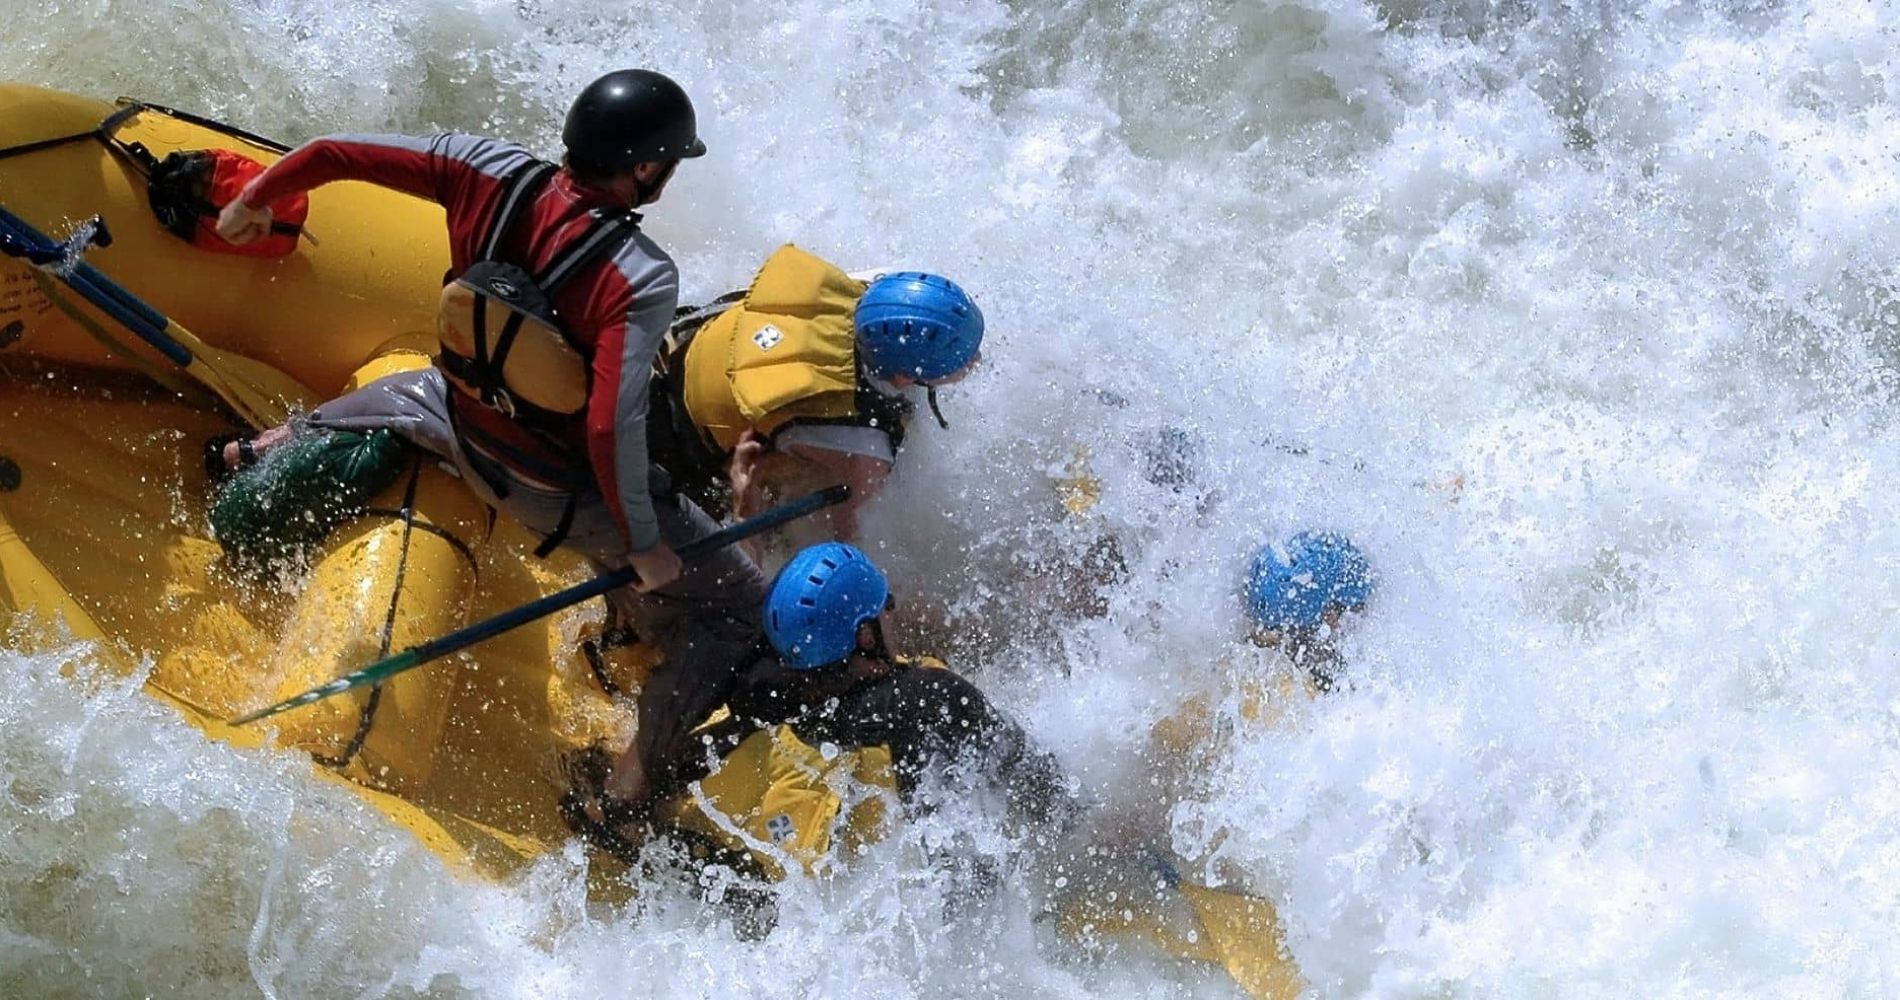 Half-Day Fraser River Rafting in Canada